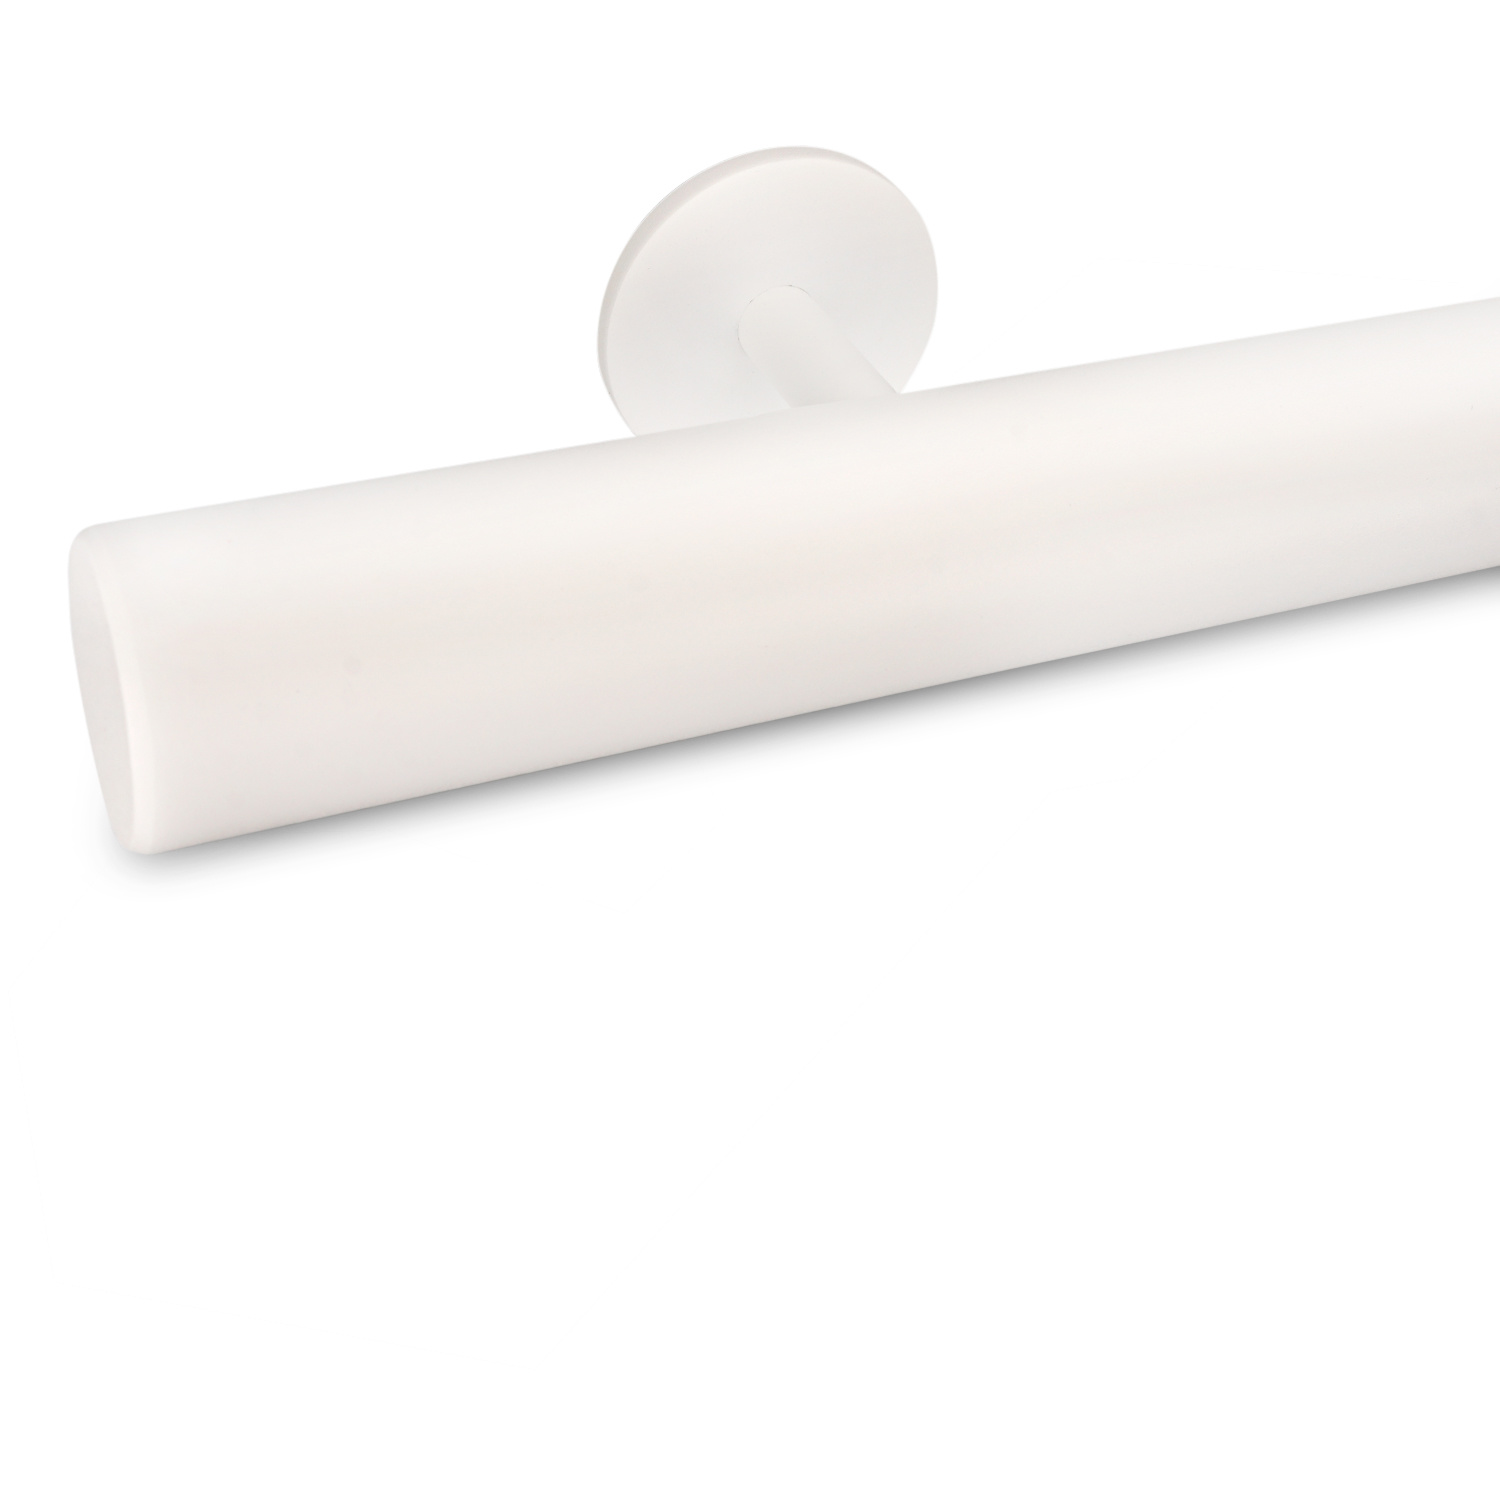 Trapleuning wit gecoat rond incl. dragers TYPE 5 - witte poedercoating